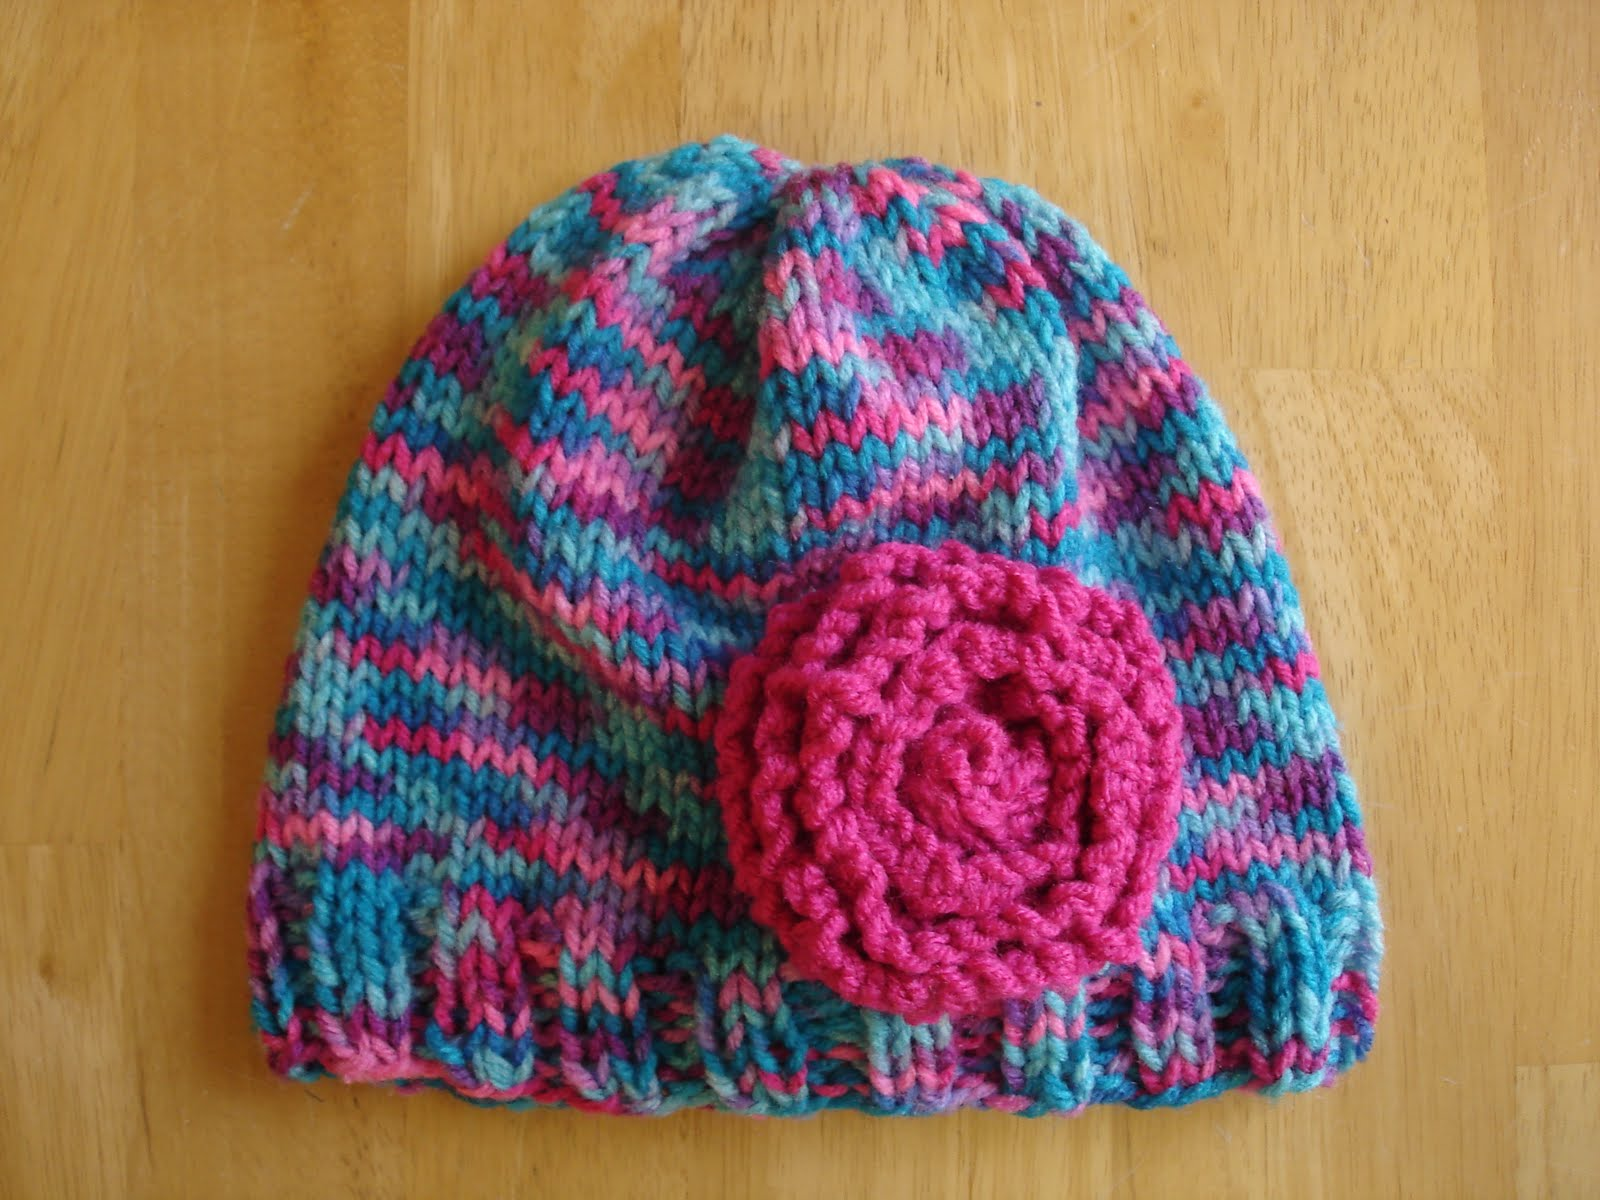 Free Knitting Pattern Baby Flower Hat : Fiber Flux: 10 Great Kids Hats to Knit for Charity